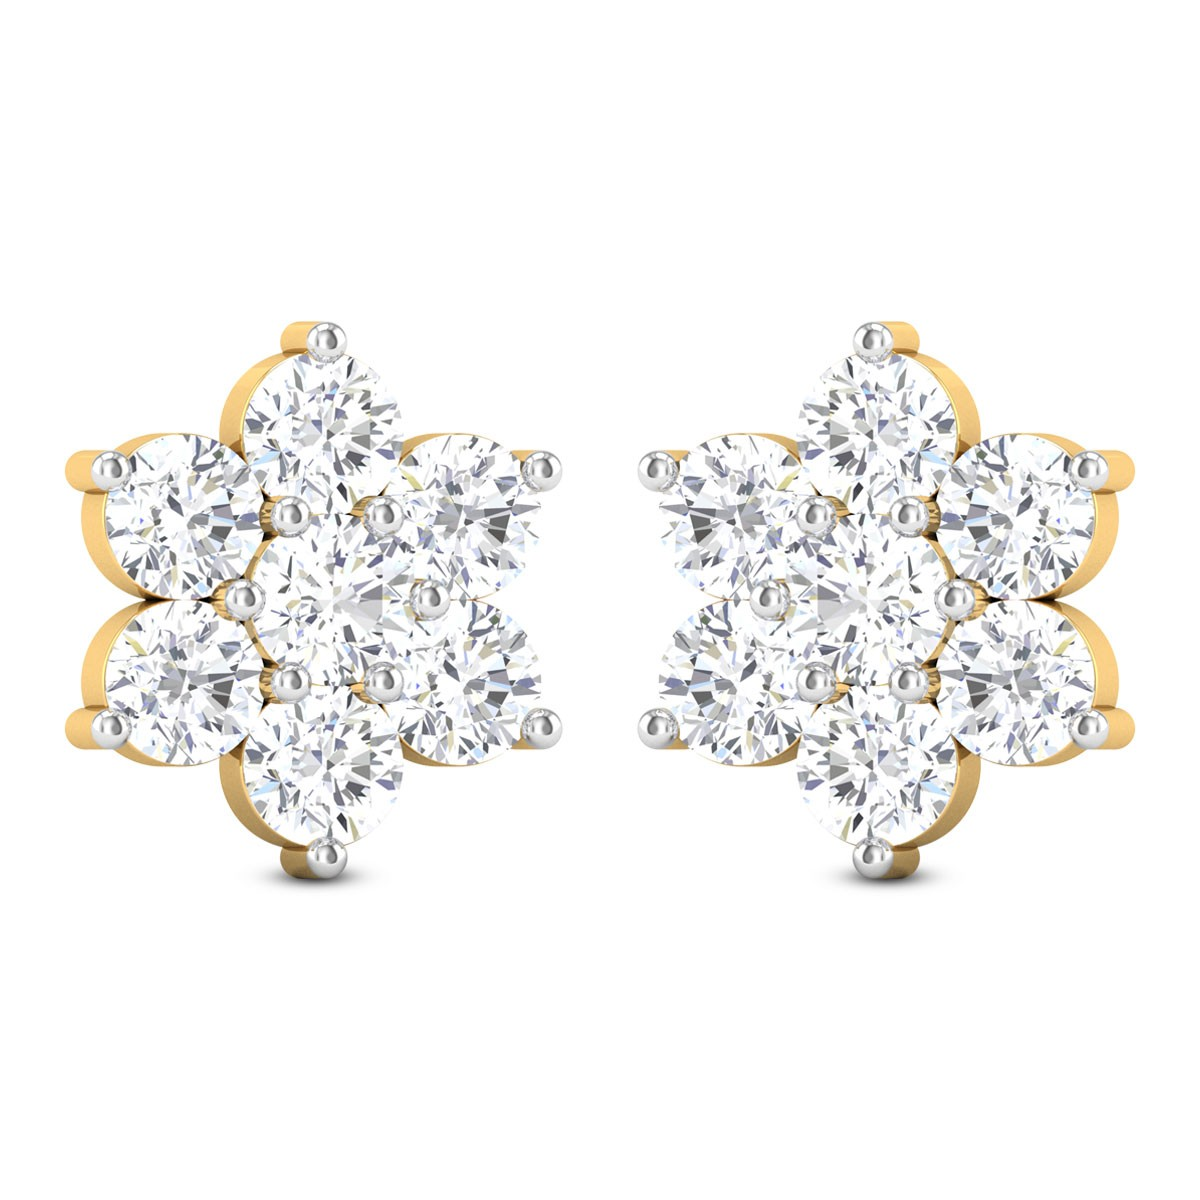 Zephyra 7 Stone Solitaire Stud Earrings